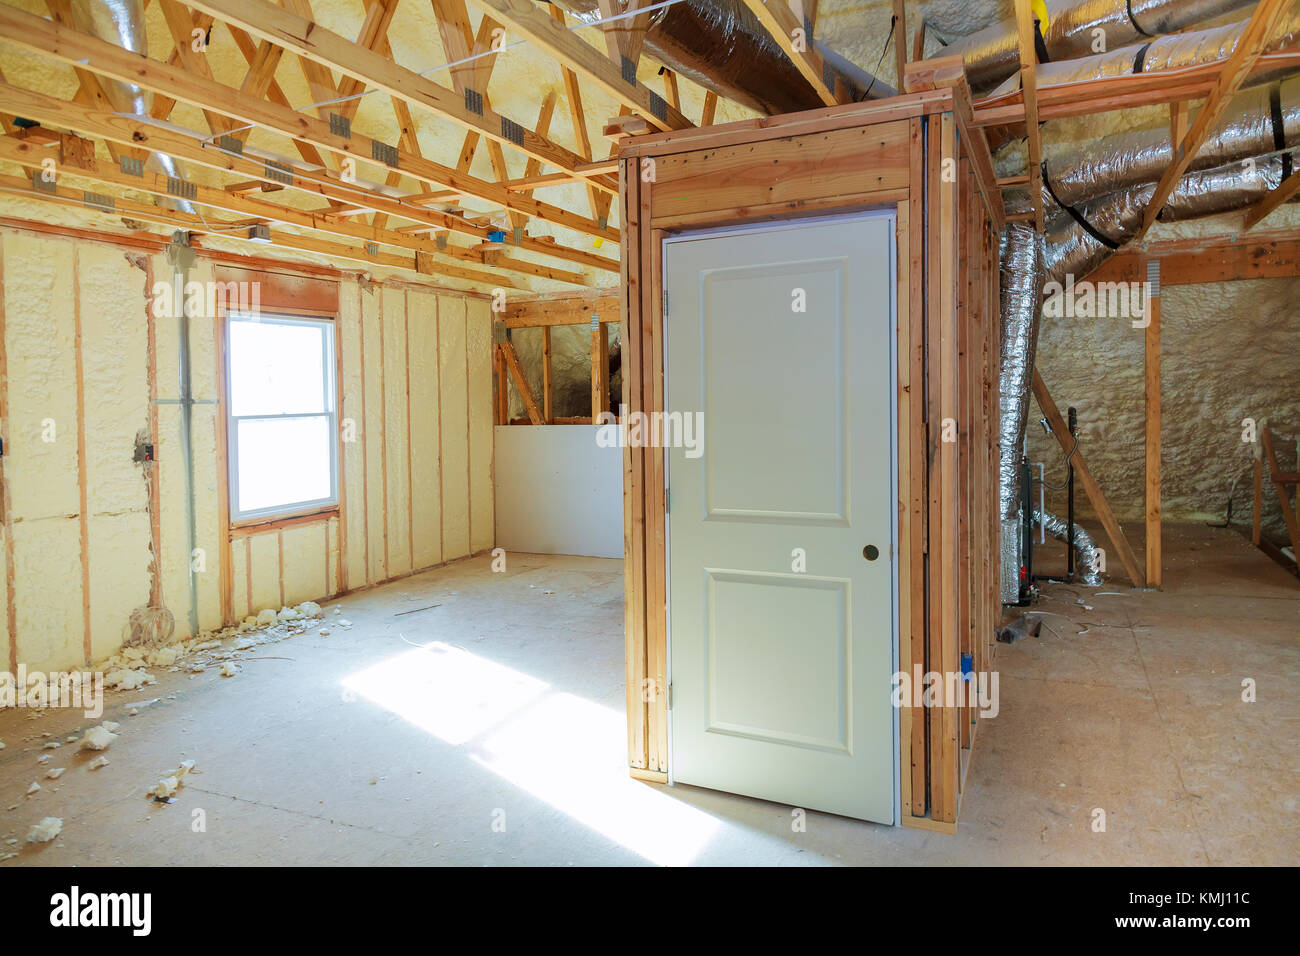 thermal and hidro insulation Inside wall insulation Interior view construction new residential home. Stock Photo